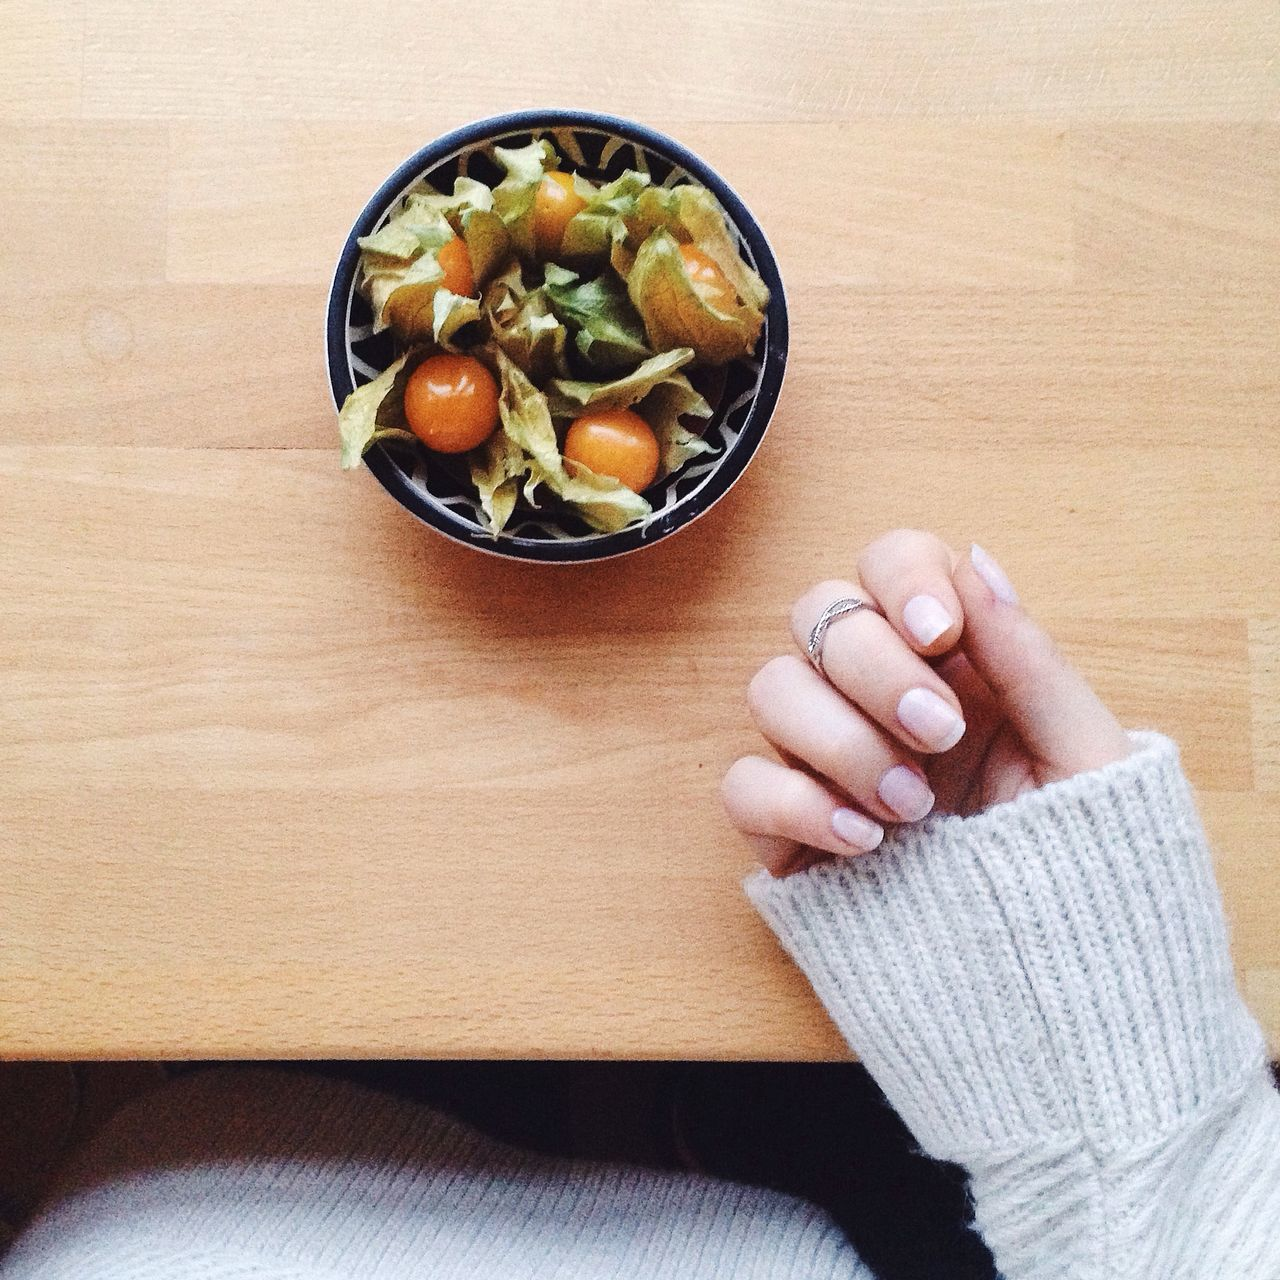 Keeping it simple today Fruit From My Point Of View Holiday POV Simplicity Vintage Ootd Sweaterweather Blogger Nails